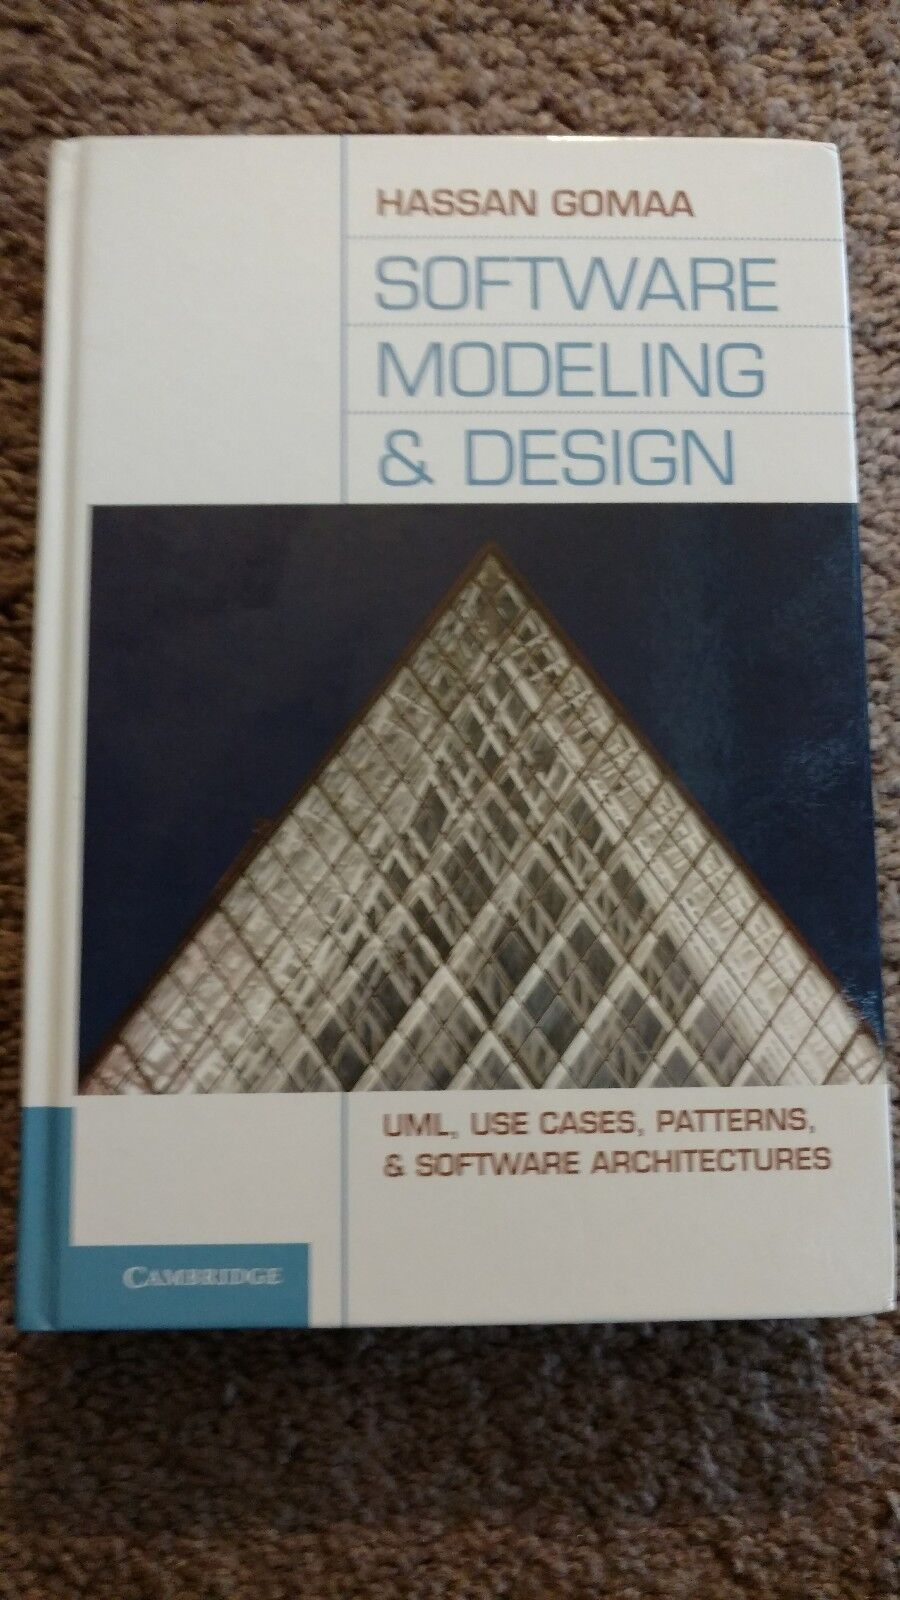 Software Modeling And Design Uml Use Cases Patterns And Software Architectures By Hassan Gomaa 2011 Hardcover For Sale Online Ebay